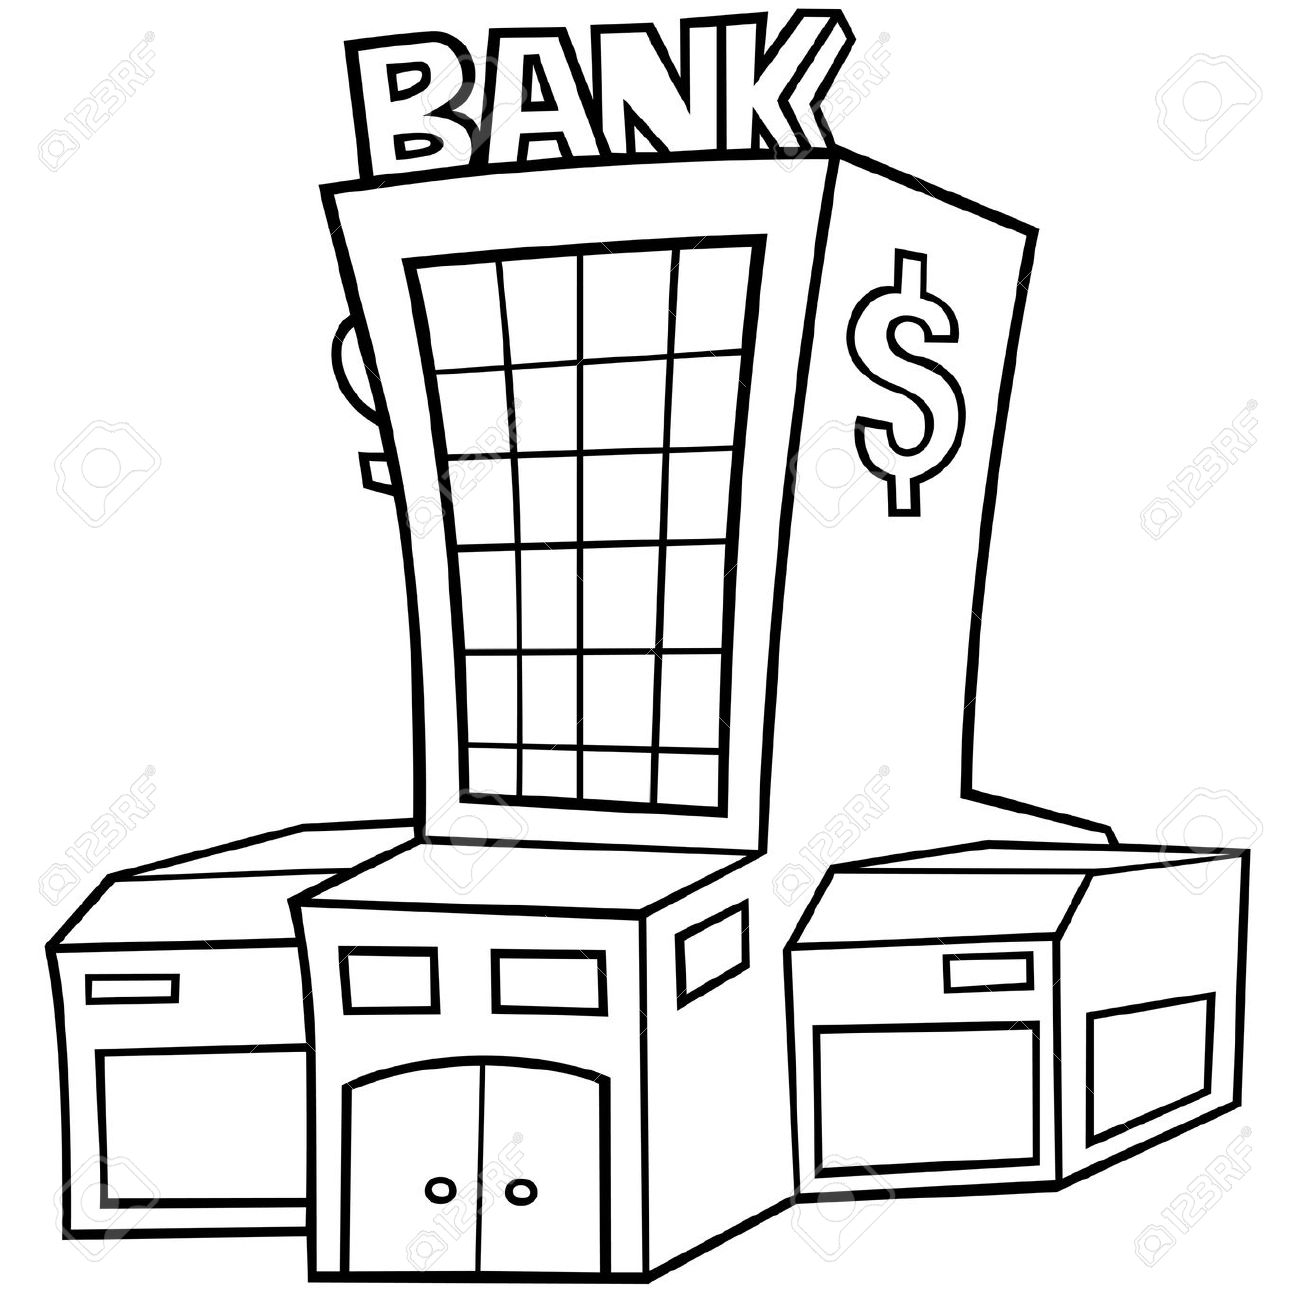 Bank Clip Art Free | Clipart Panda - Free Clipart Images